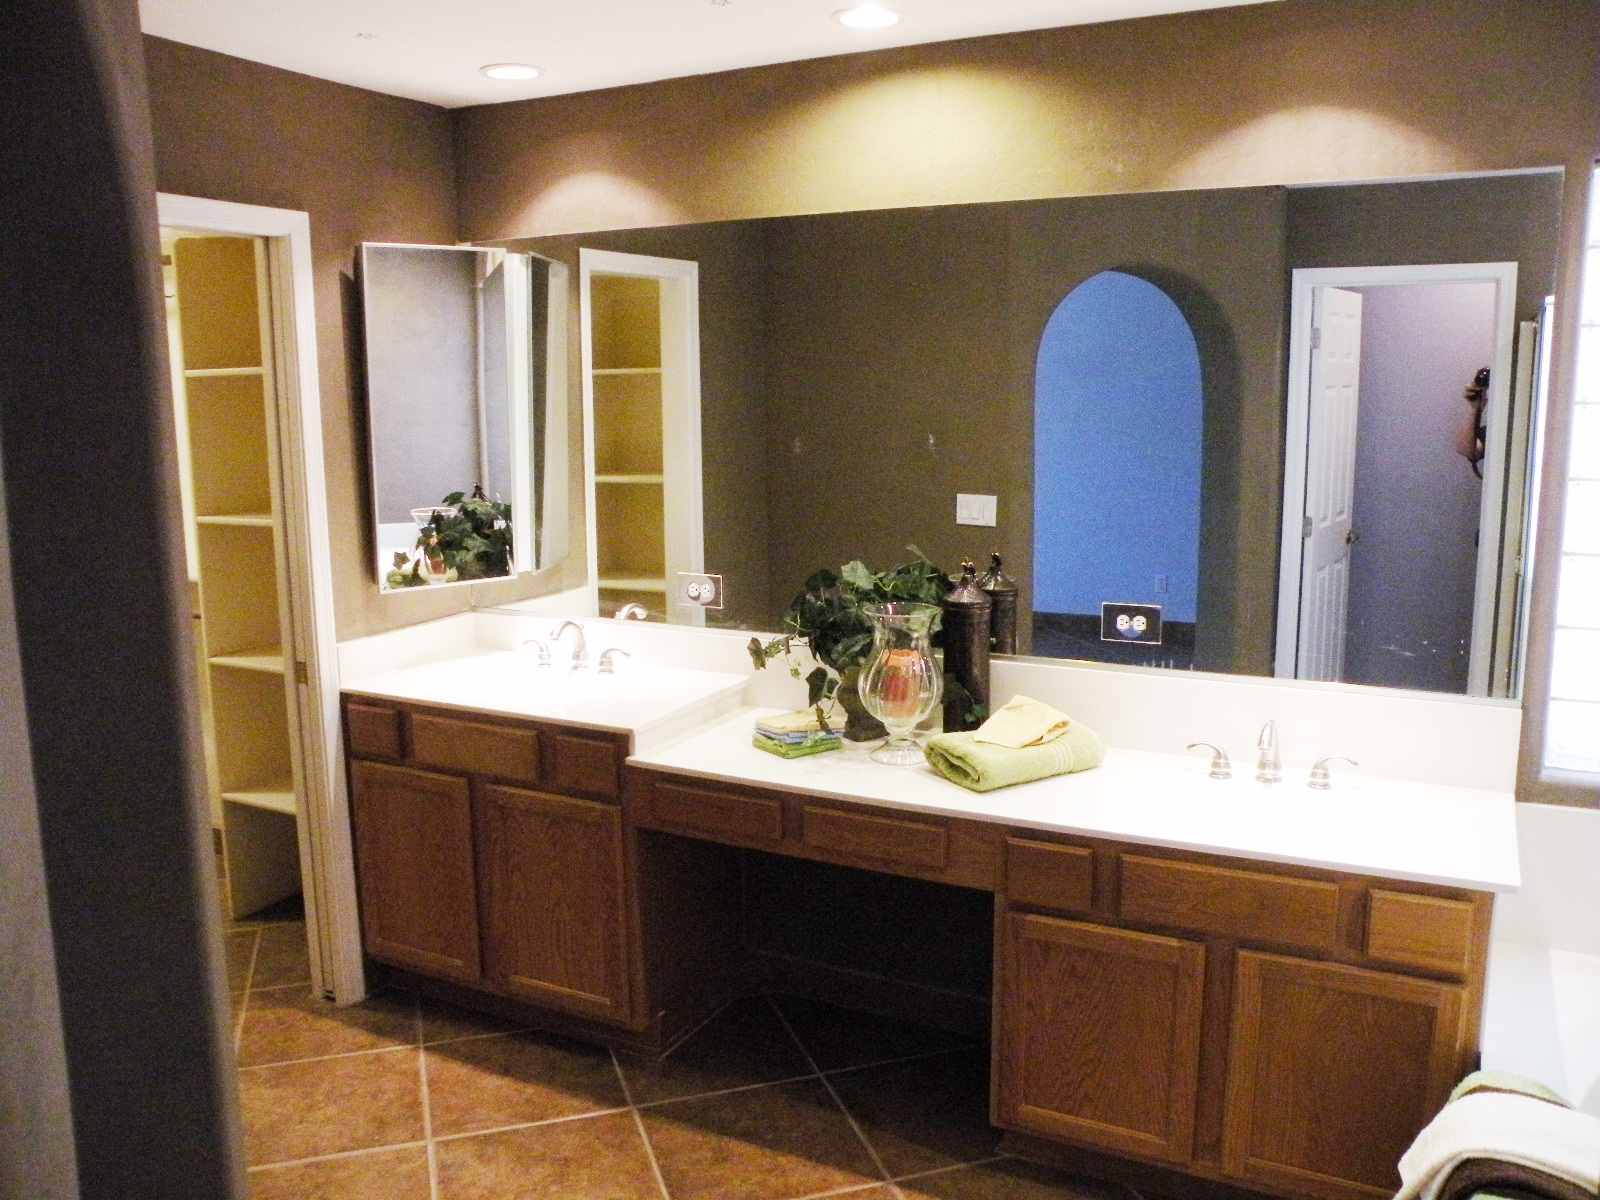 Former model home for sale the sonoran life style for Master bathroom double vanity